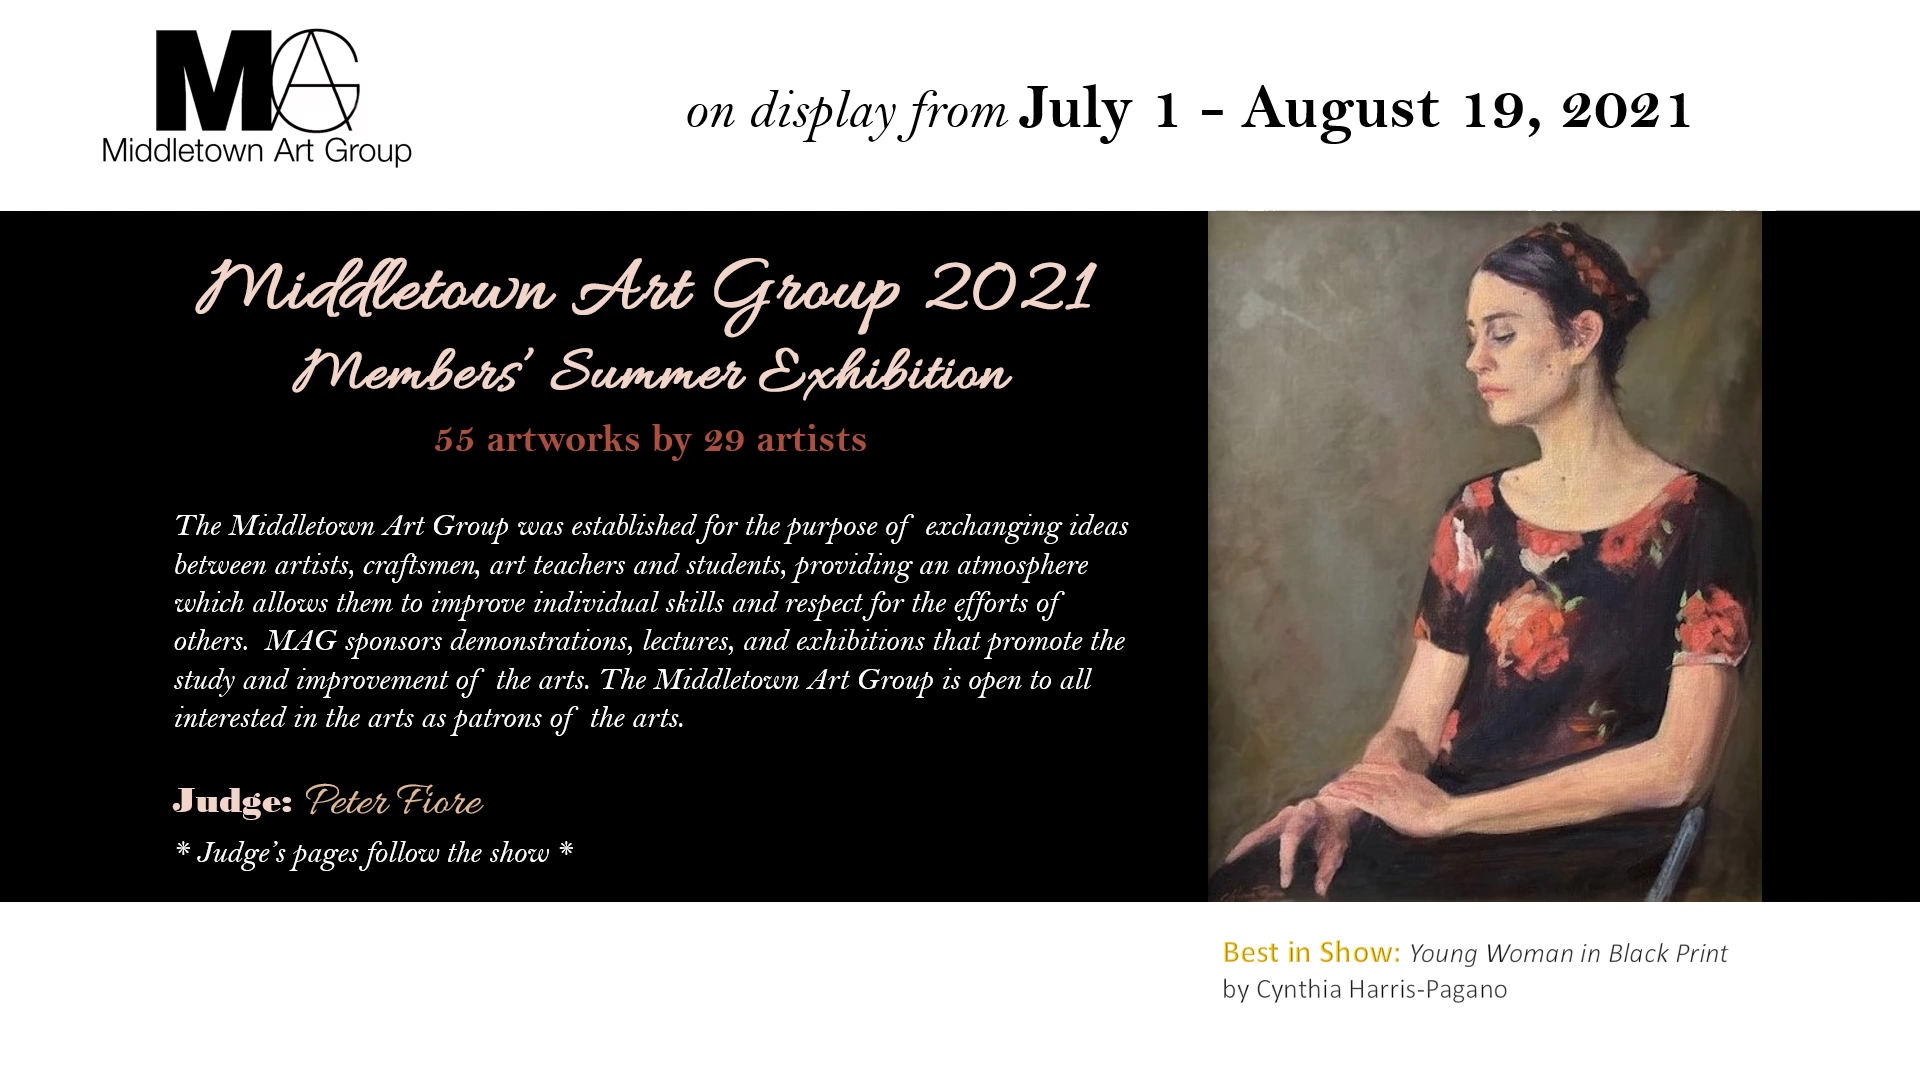 Middletown Art Group 2021 Members Summer Exhibition